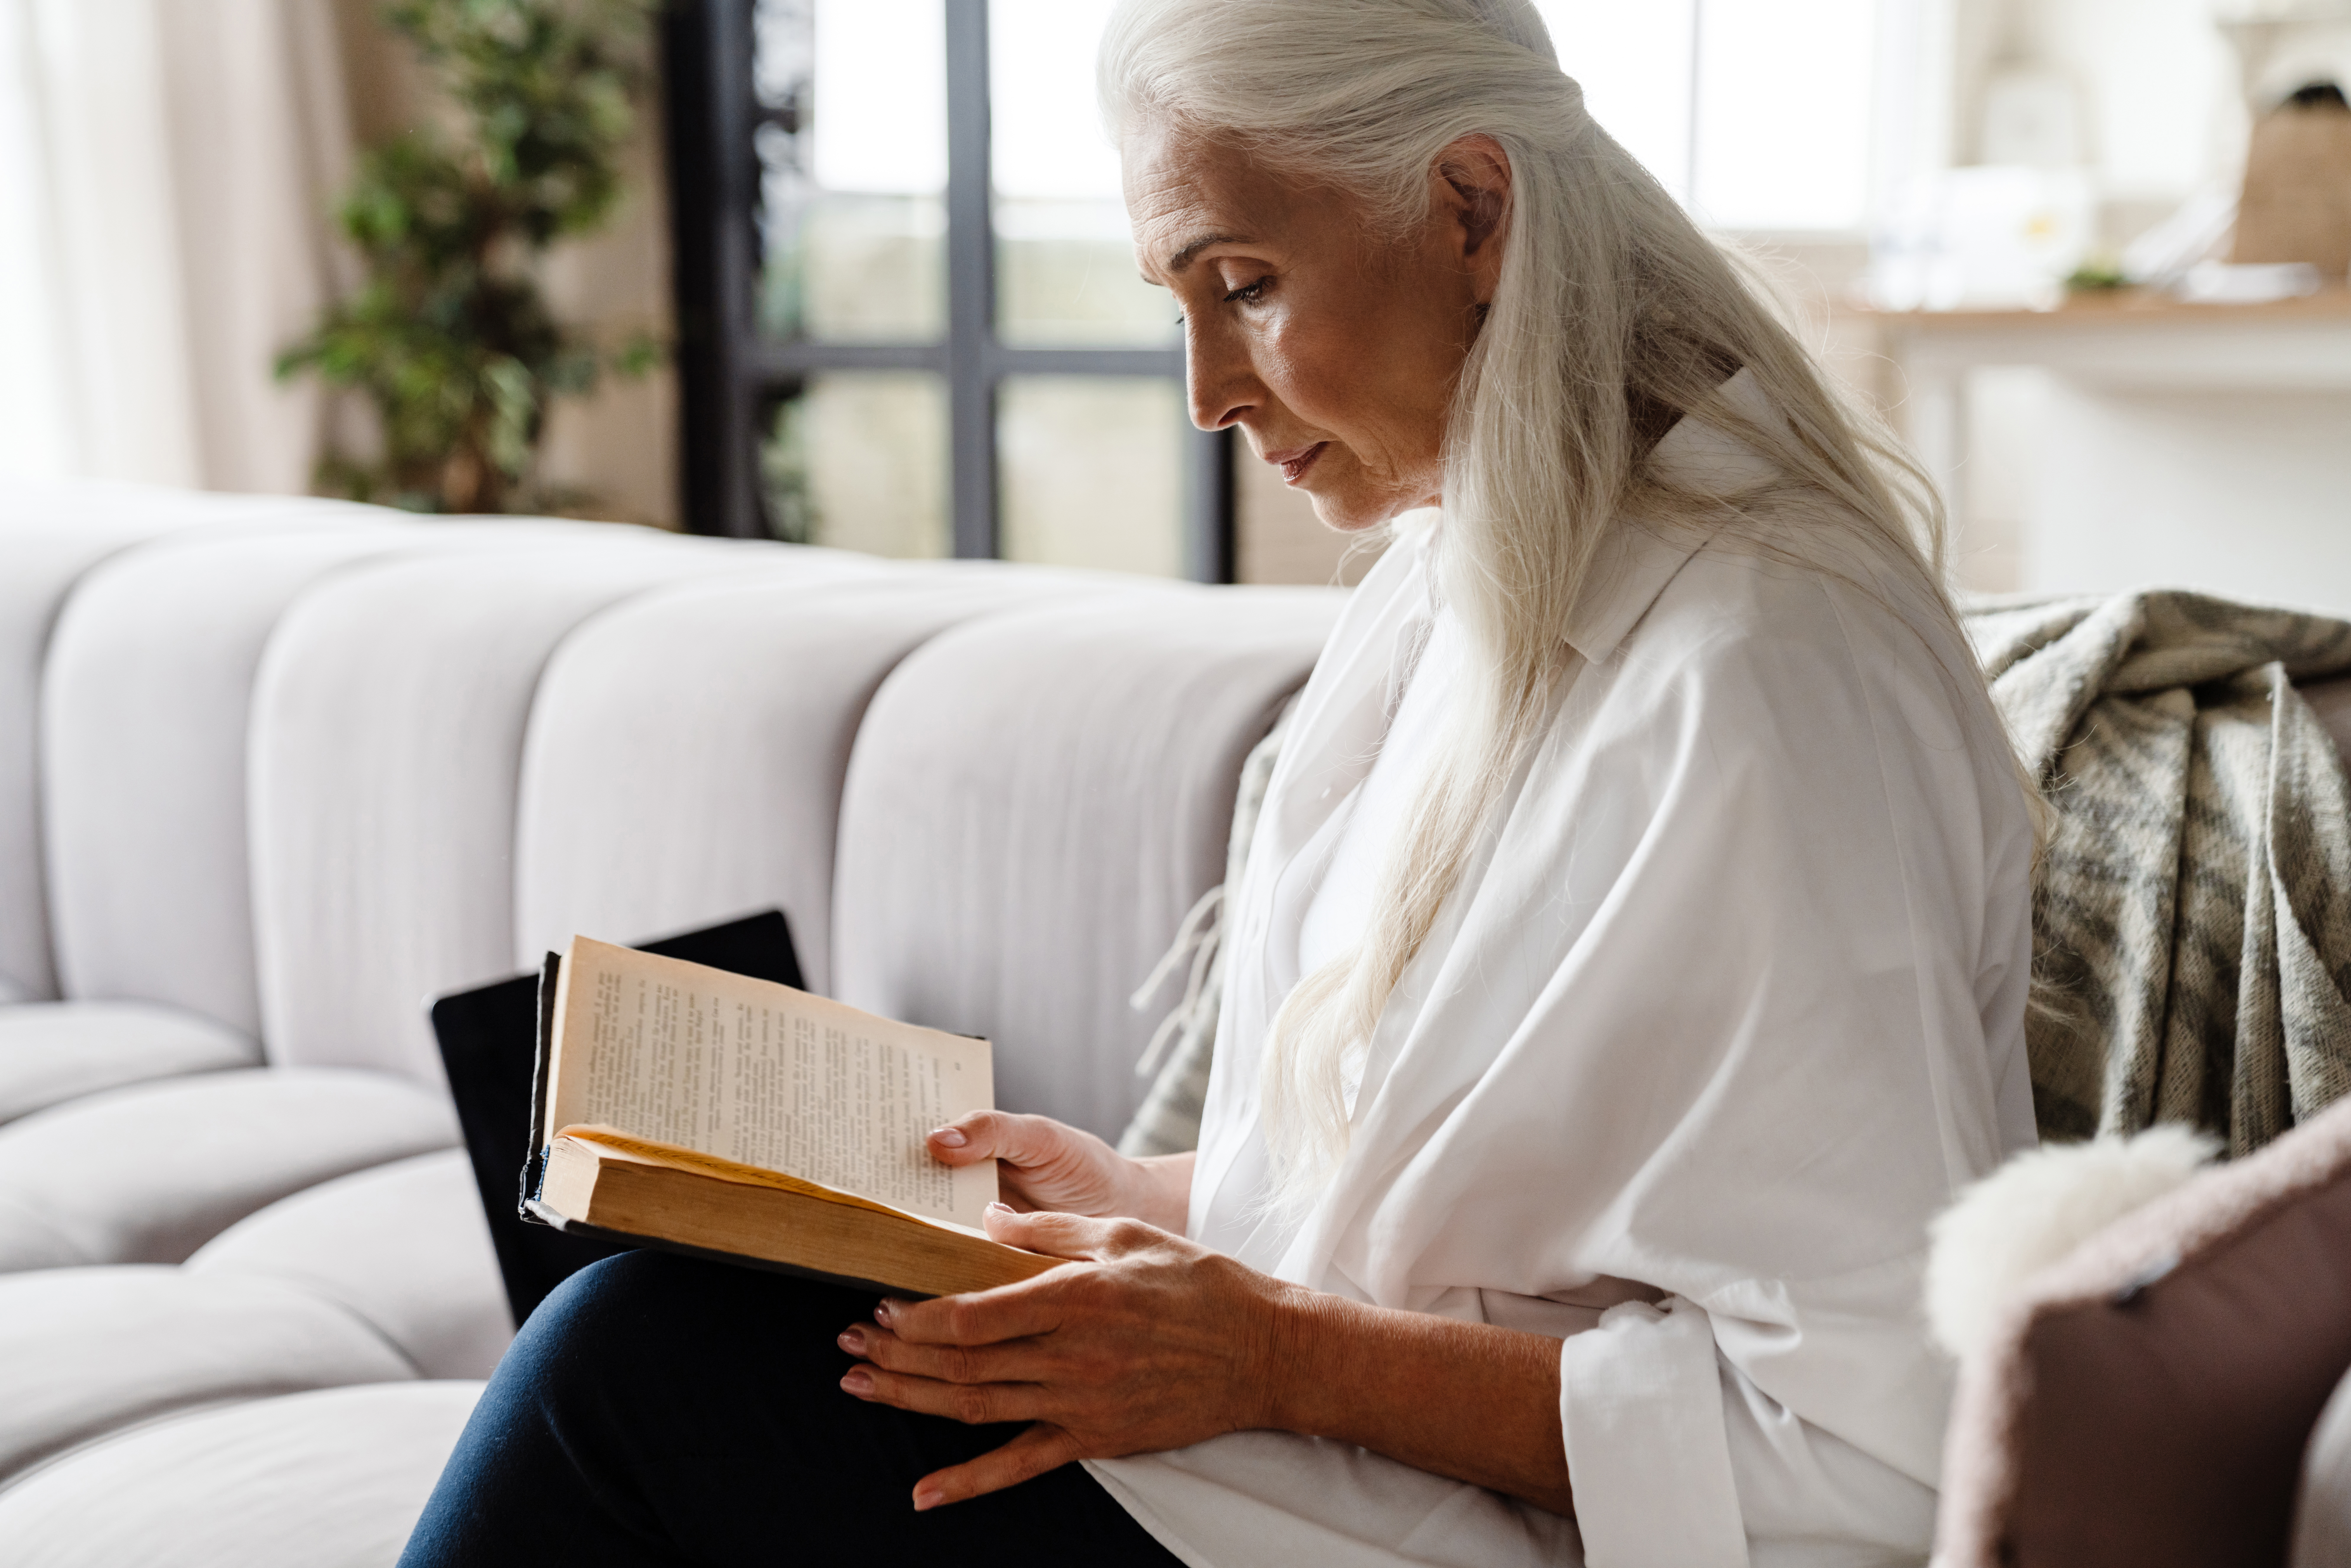 calm-senior-woman-reading-a-book-HTCLMQ8